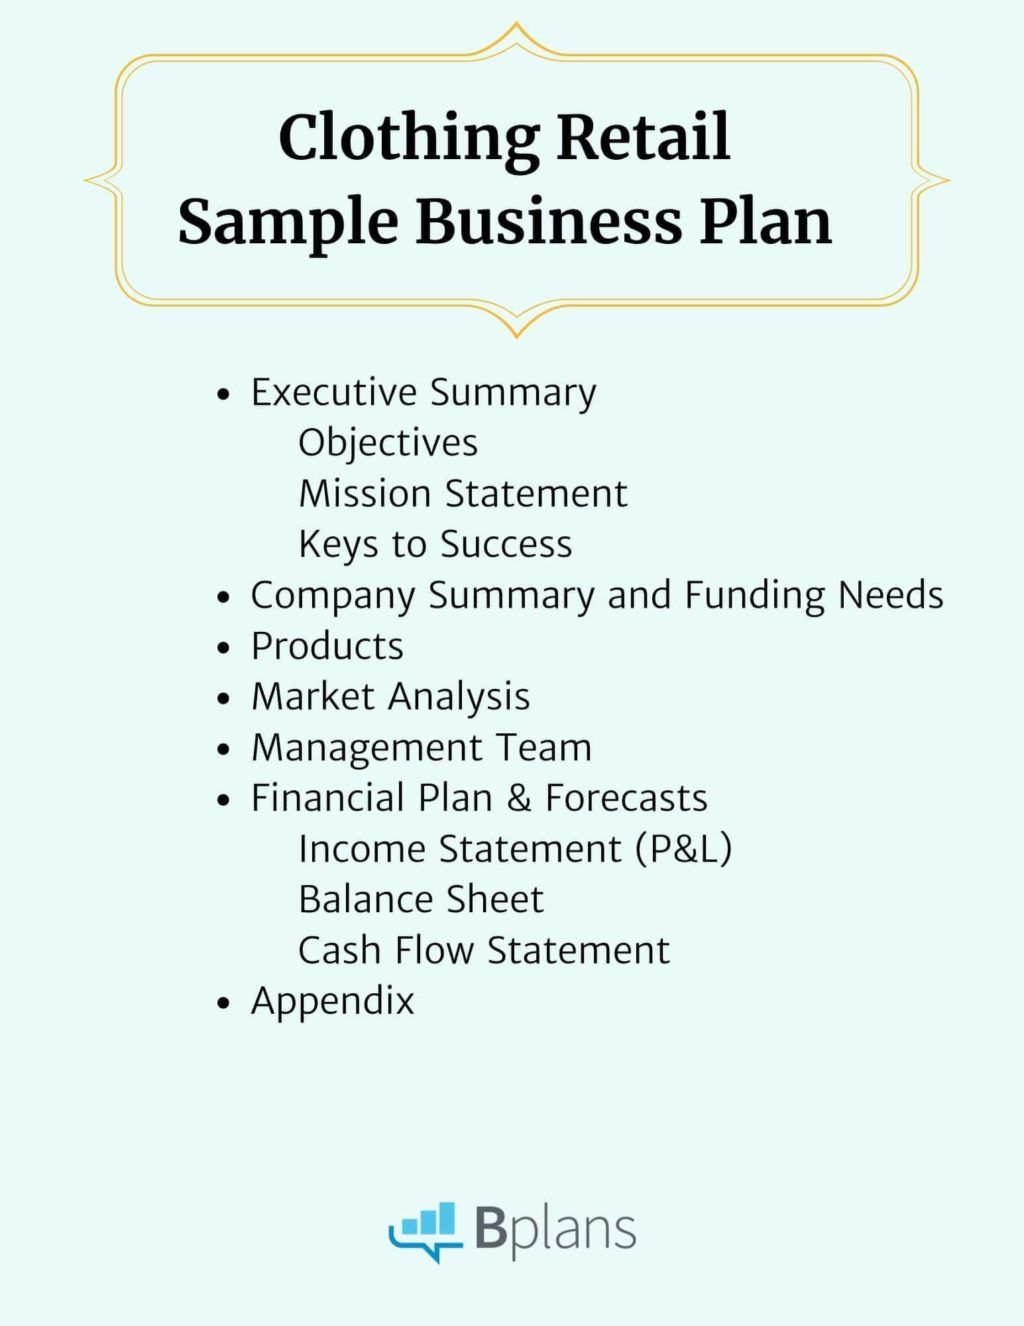 Clothing Retail Sample Business Plan Bplans pertaining